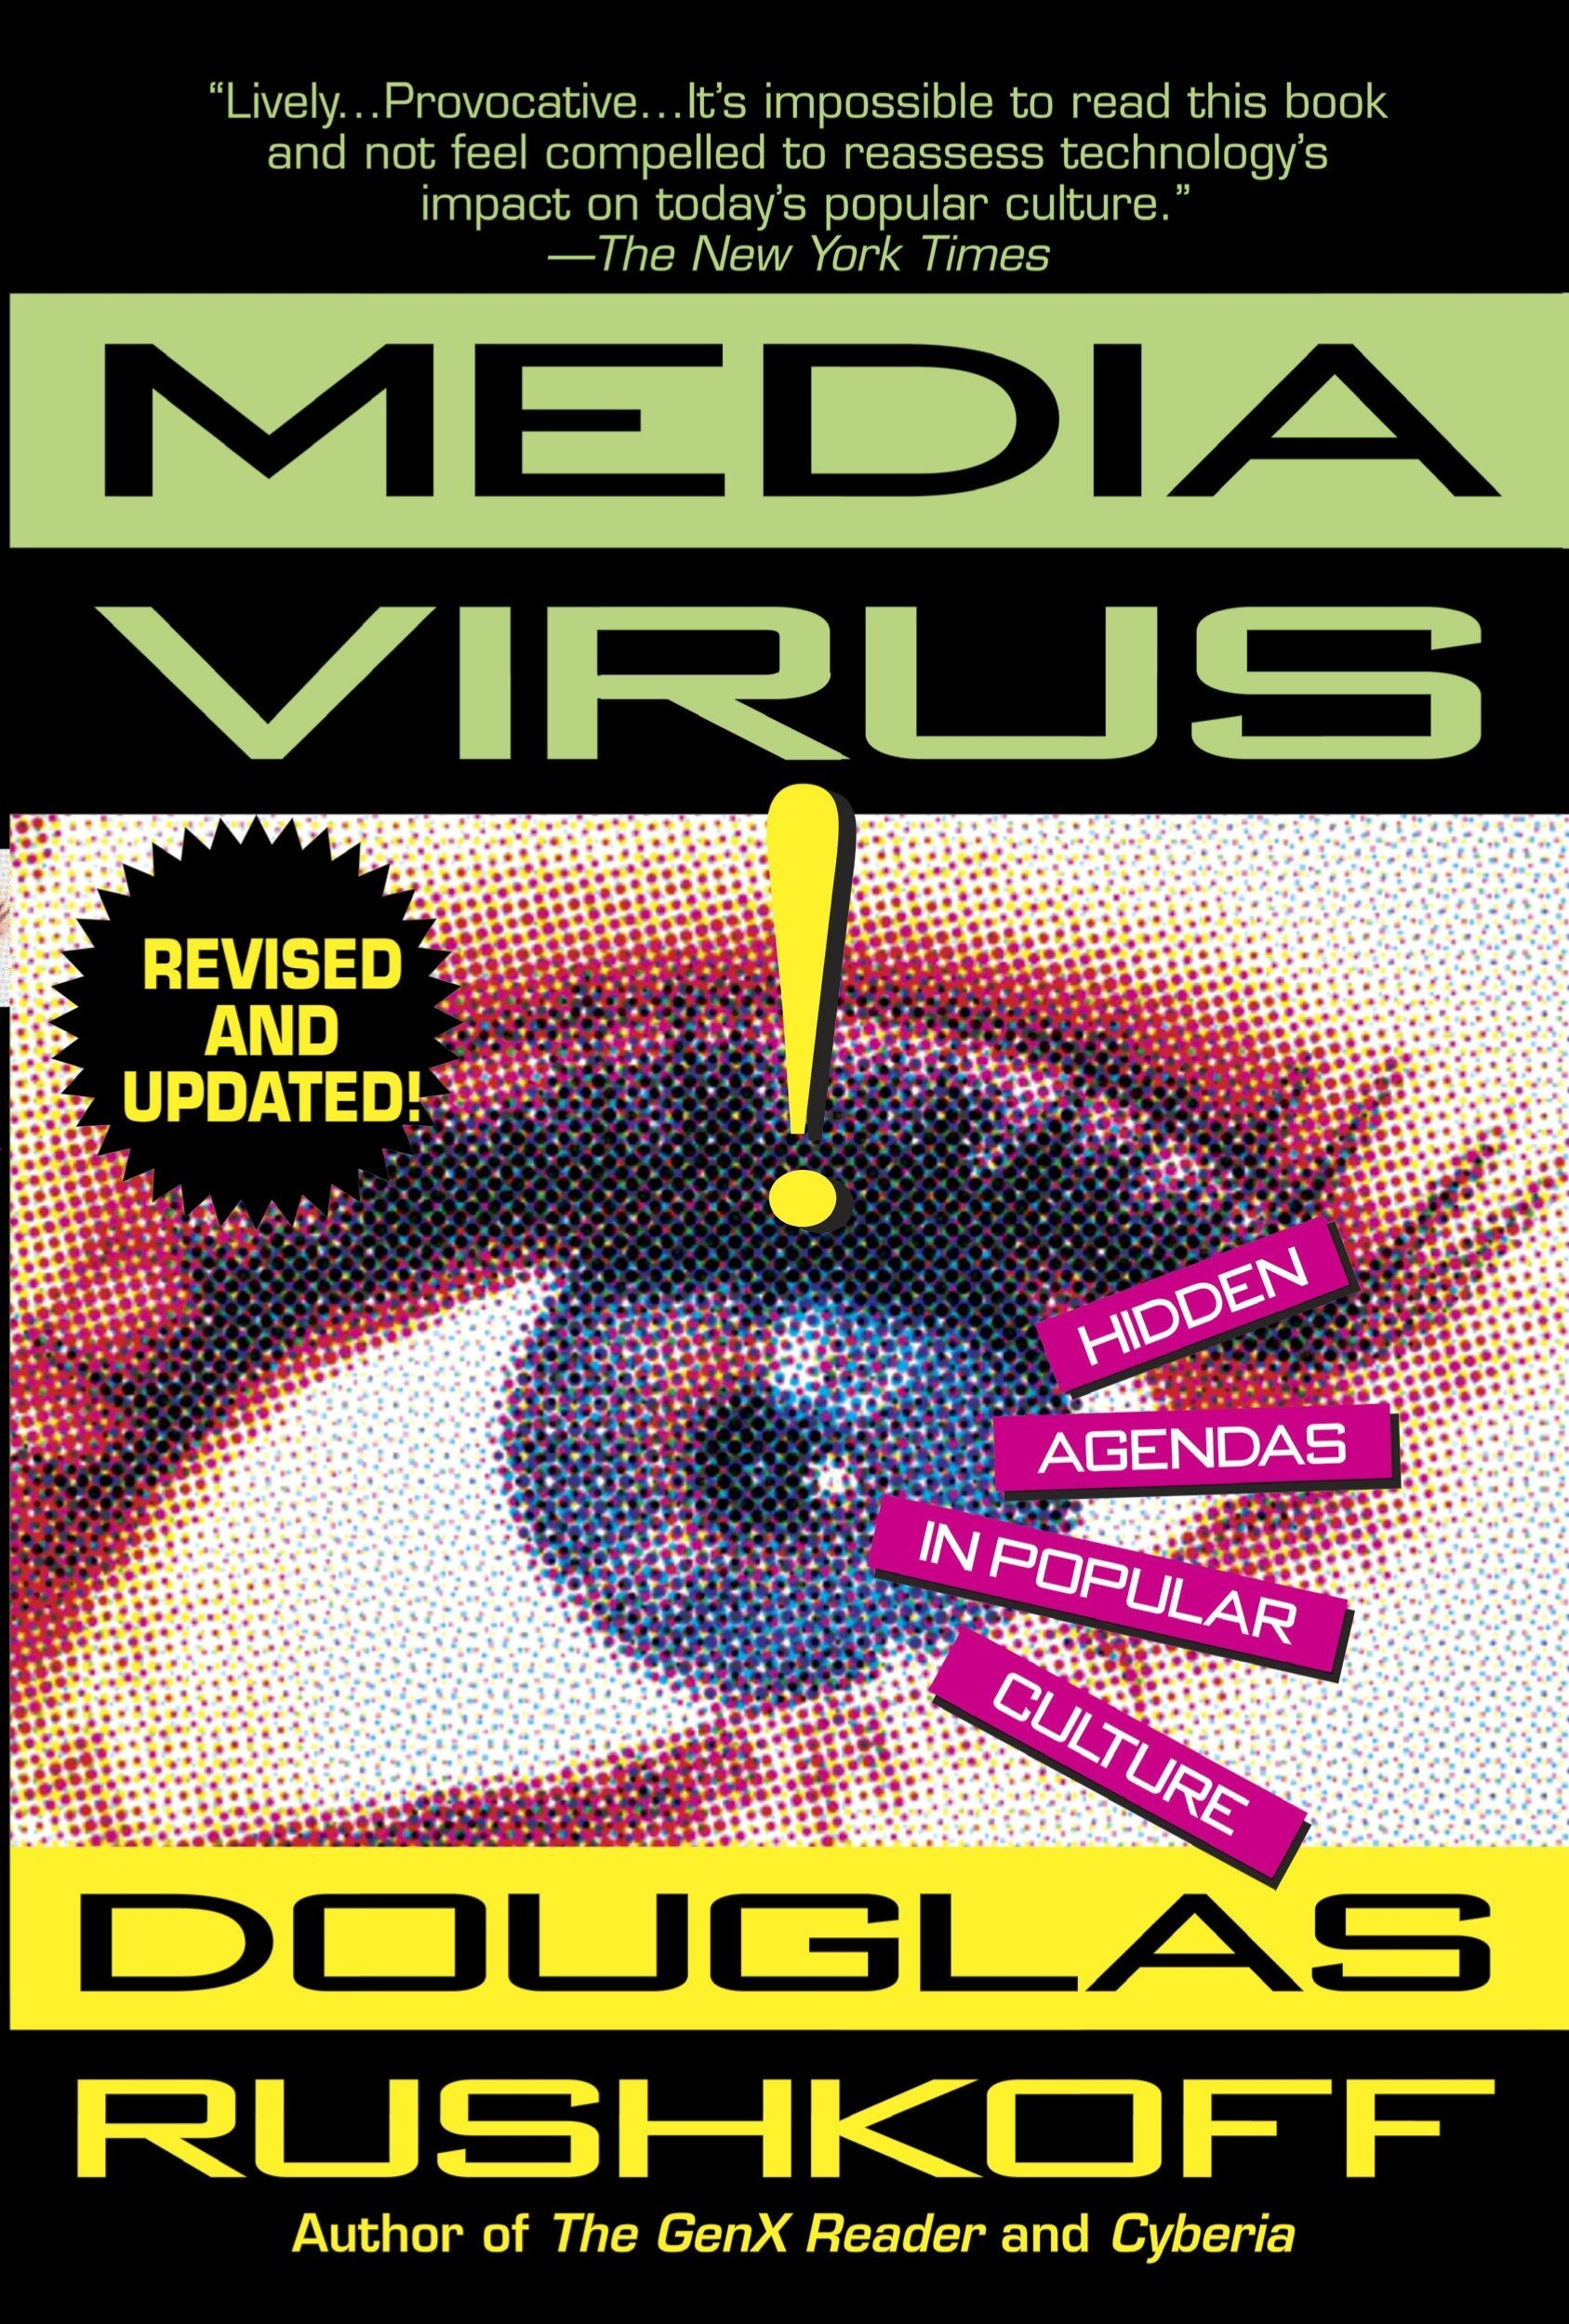 Media Virus!: Amazon.es: Rushkoff, Douglas: Libros en idiomas extranjeros